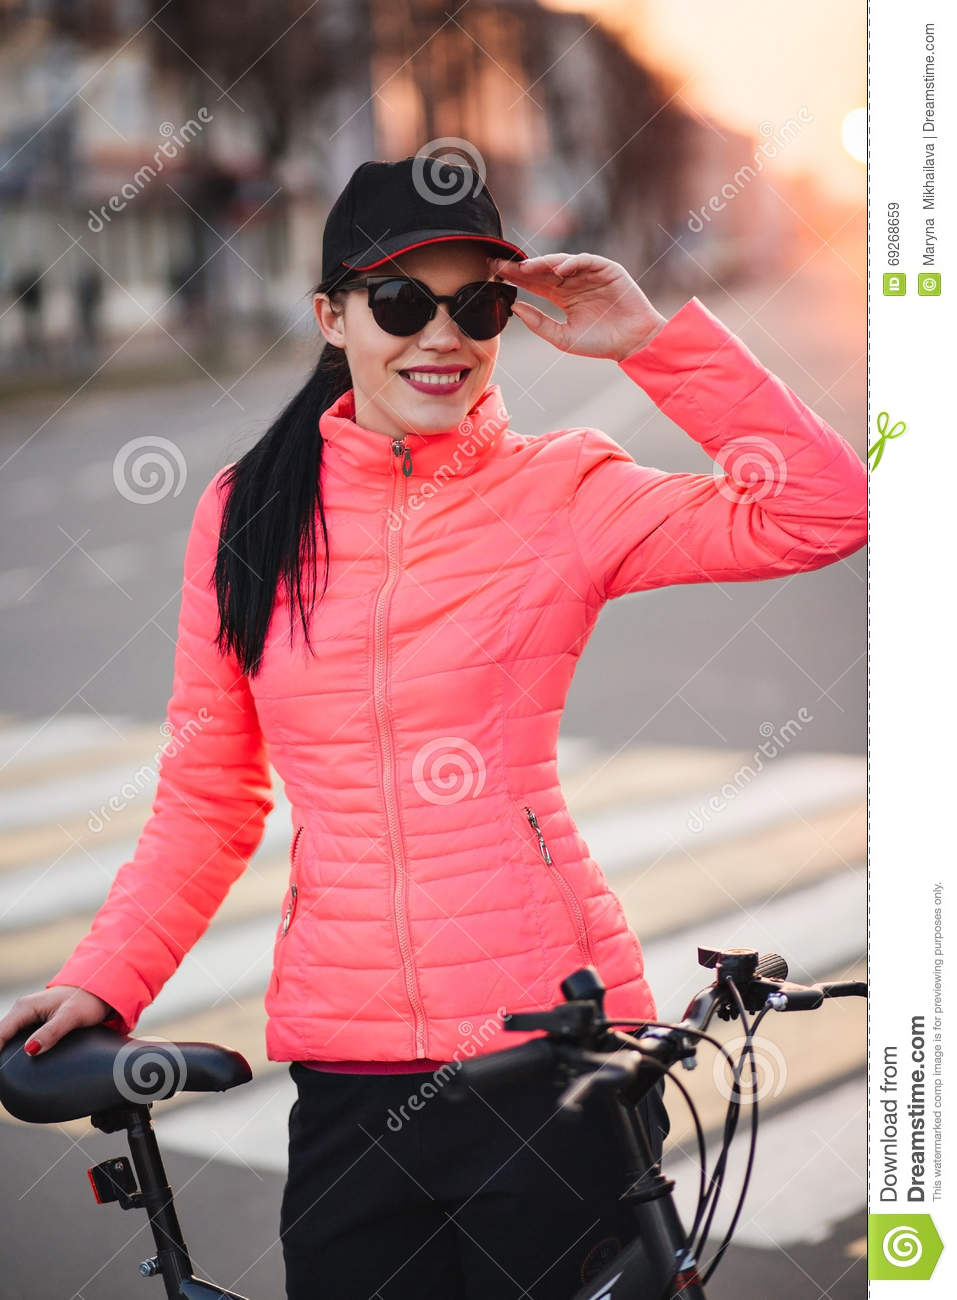 Trendy Hipster Girl with Bike on Urban Background. Toned and Filtered Photo. Modern Youth Lifestyle Concept. girl in a